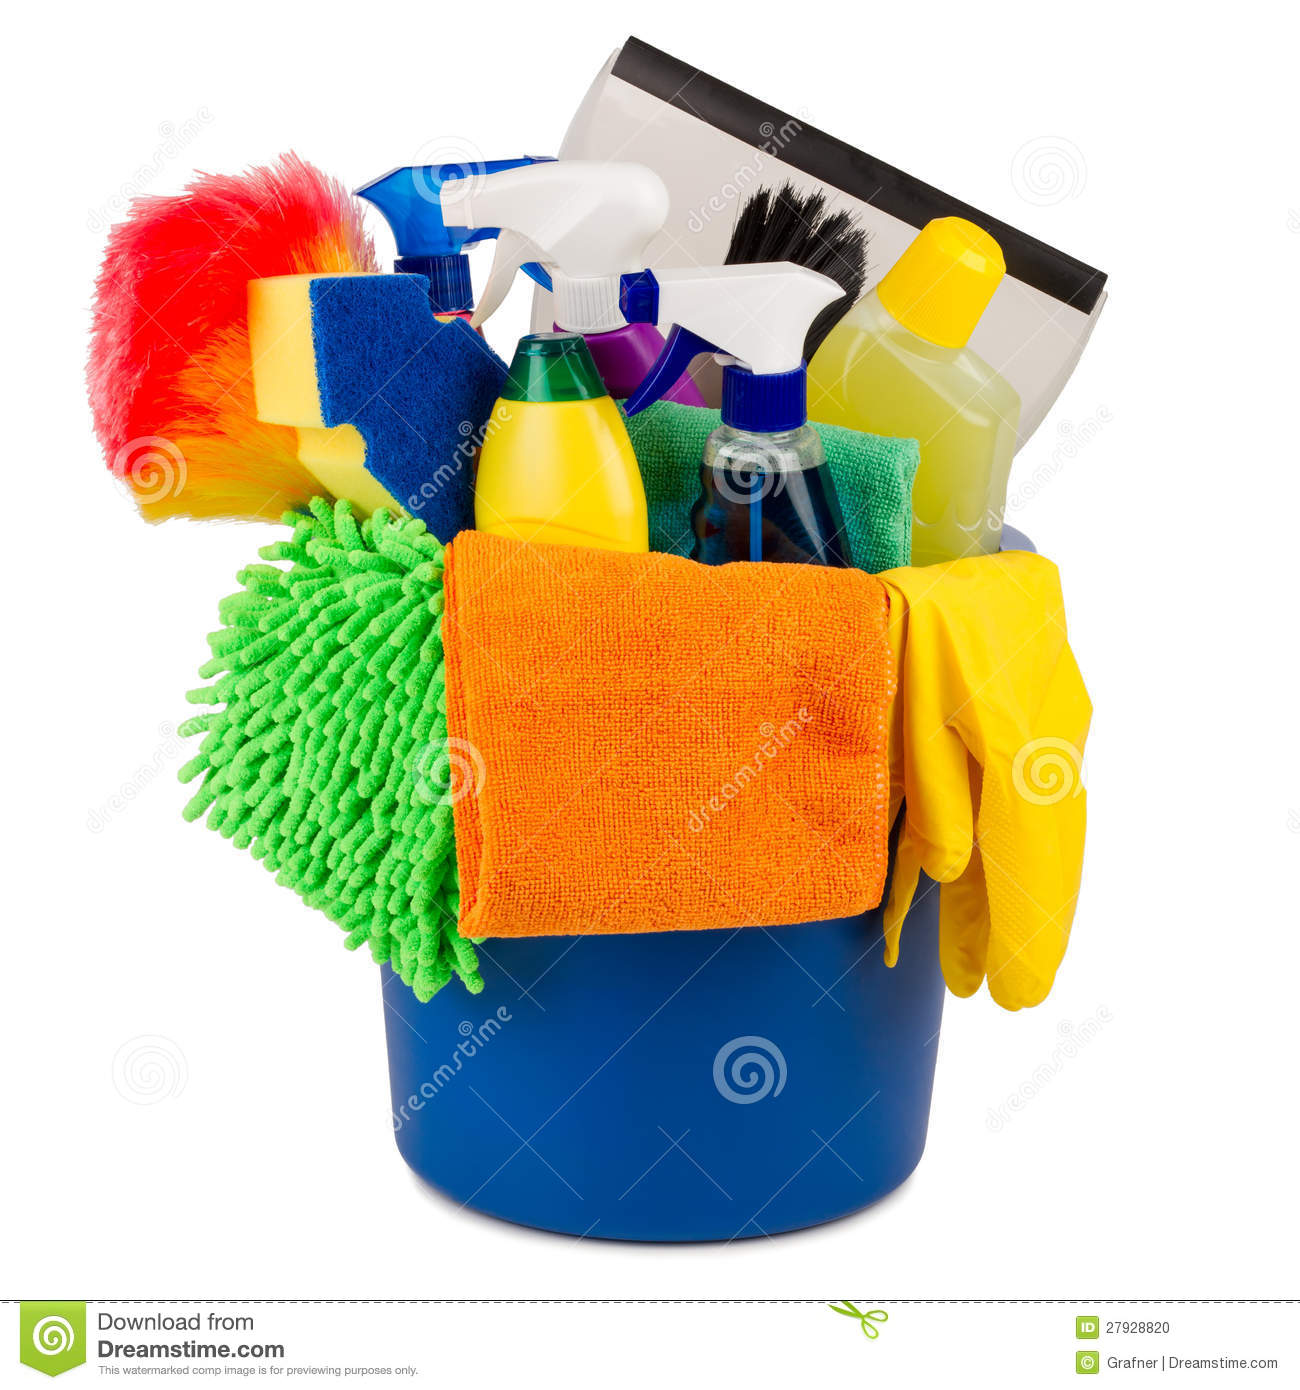 Cleaning Kitchen Utensils: Cleaning Bucket Stock Photo. Image Of Dusters, Spray